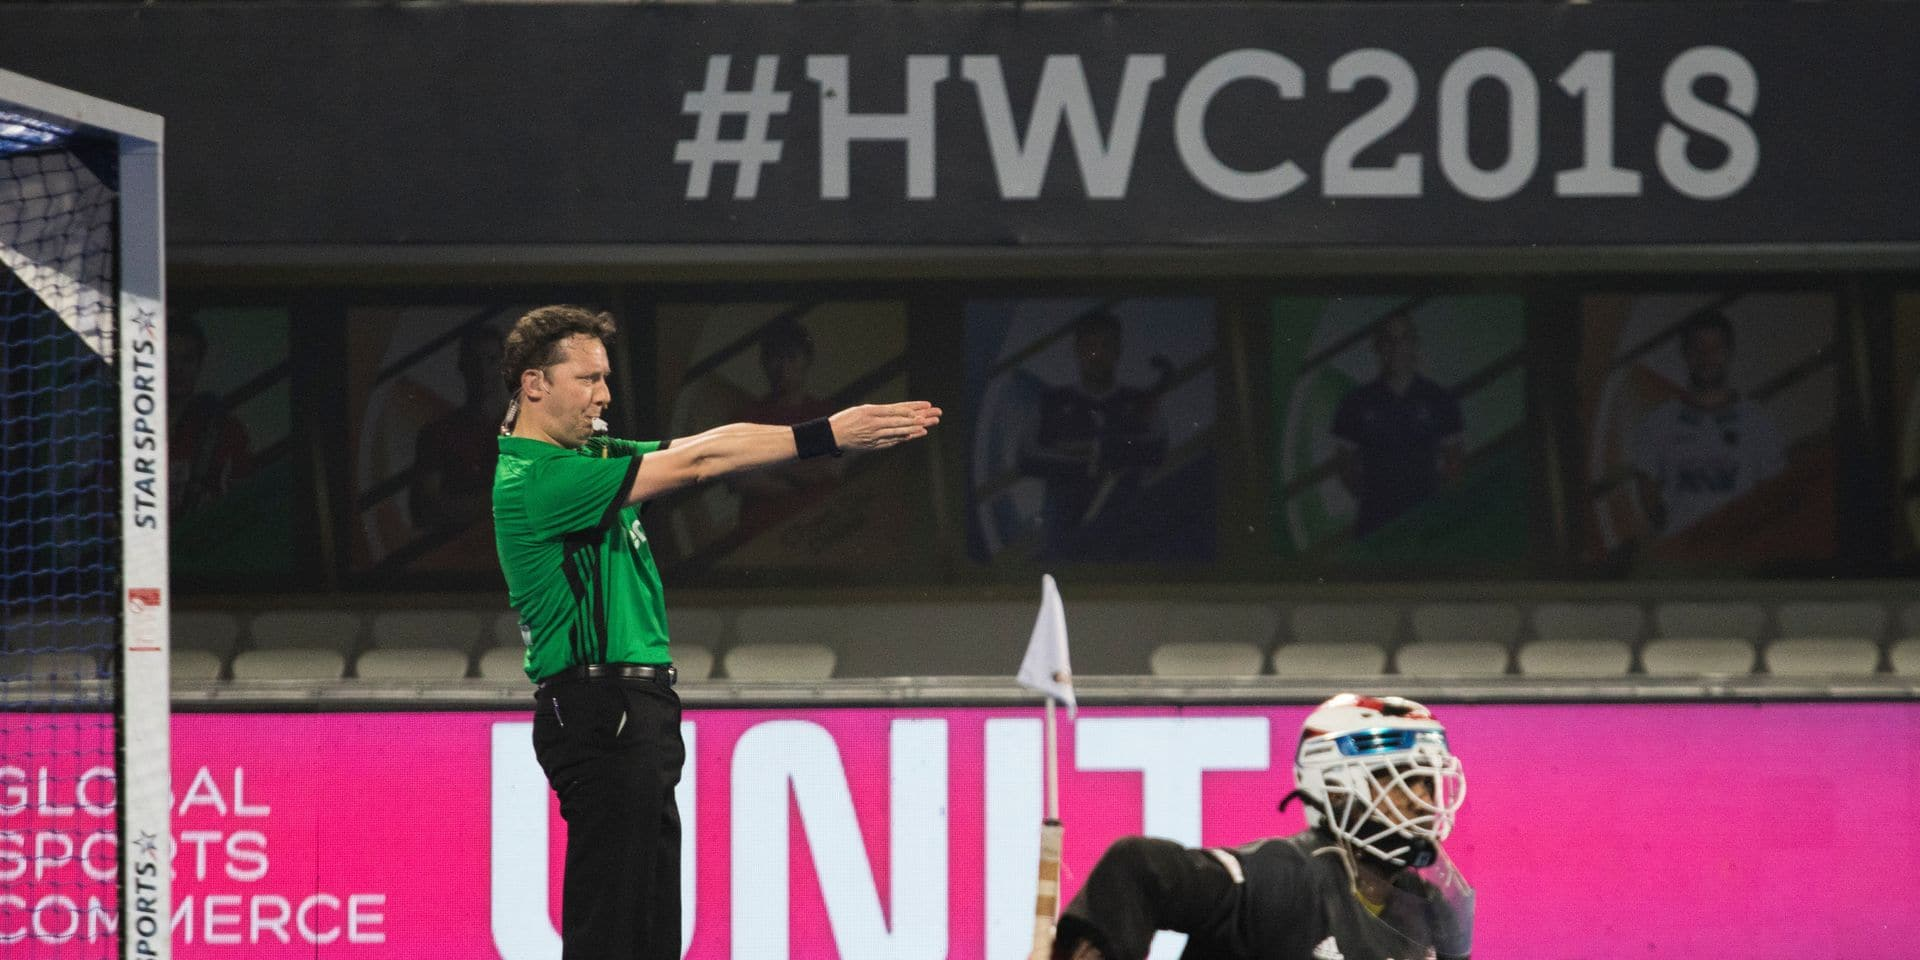 """Belgian referee Gregory Uyttenhove in action during the Hockey World Cup, in Bhubaneswar, India. on the picture regarding the Belga article """"L'Allemagne vainqueur du choc contre les Pays-Bas, partage entre le Pakistan et la Malaisie"""", 05/12/2018 17:10, in BRUSSELS. BEST QUALITY AVAILABLE - BELGA PHOTO DANIEL TECHY"""